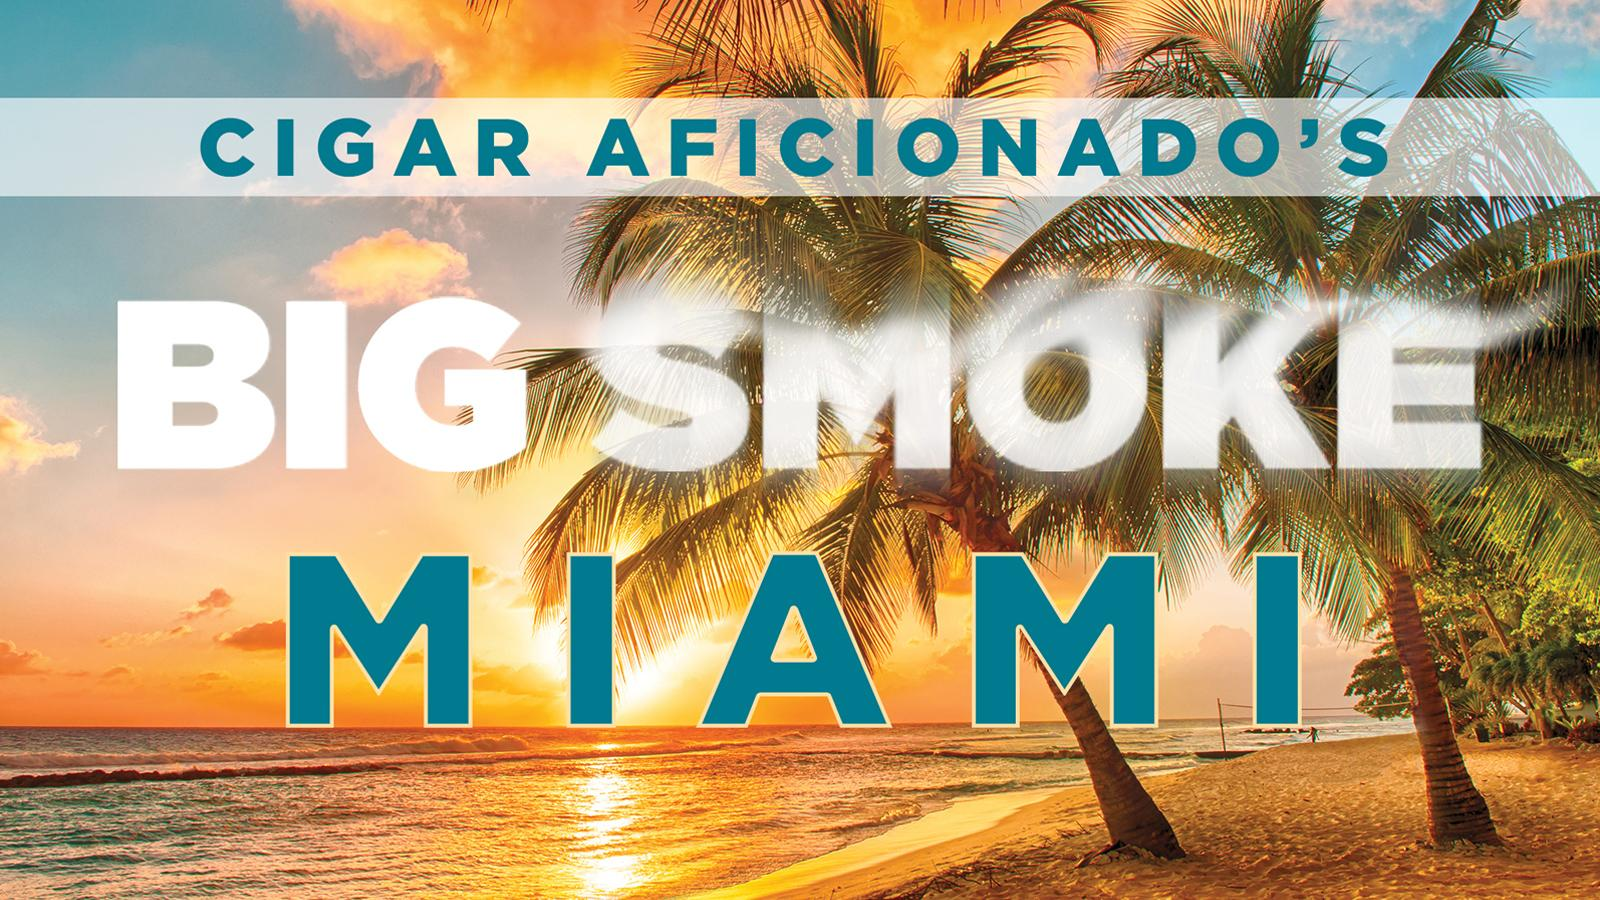 Cigar Aficionado's Big Smoke Heading To Miami